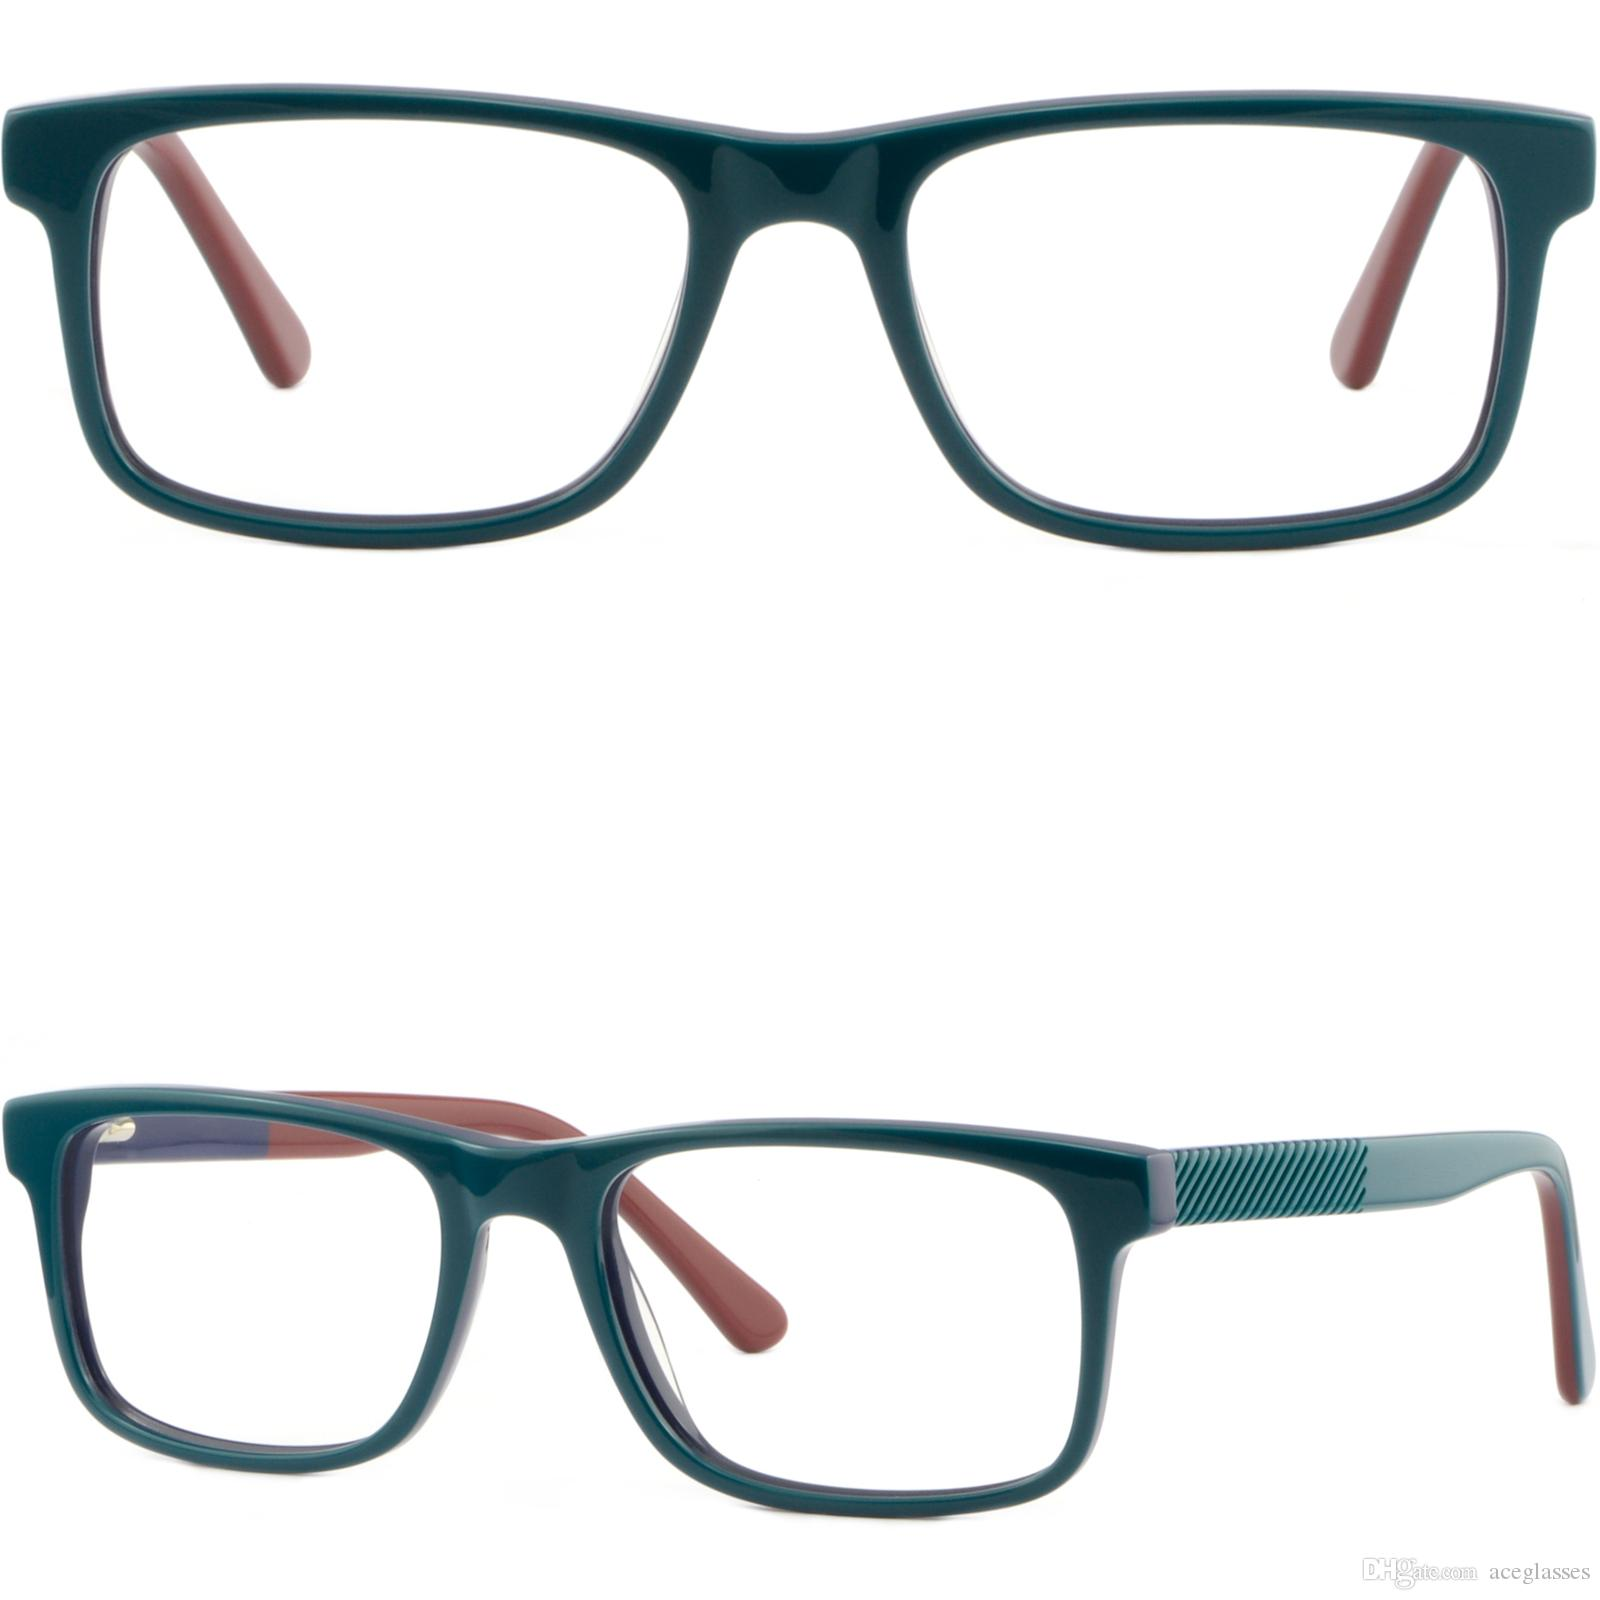 8309f5388b Light Mens Women Acetate Plastic Frame Rectangle Prescription Glasses Dark  Green Glasses Frame Online with  31.08 Piece on Aceglasses s Store